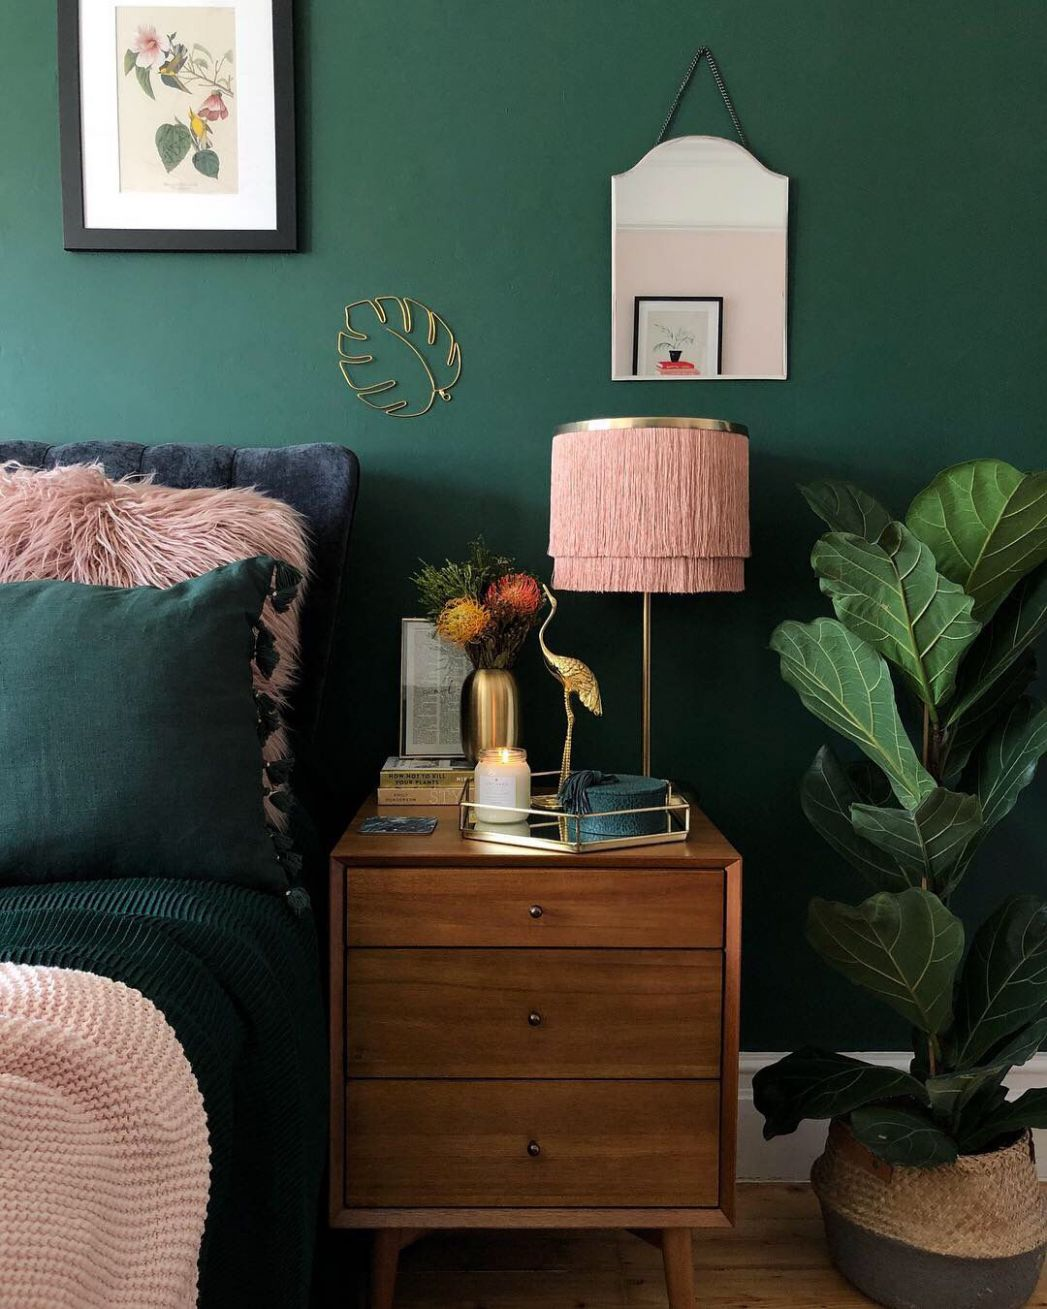 Dark green and blush pink decor in bedroom with mid century twist ..